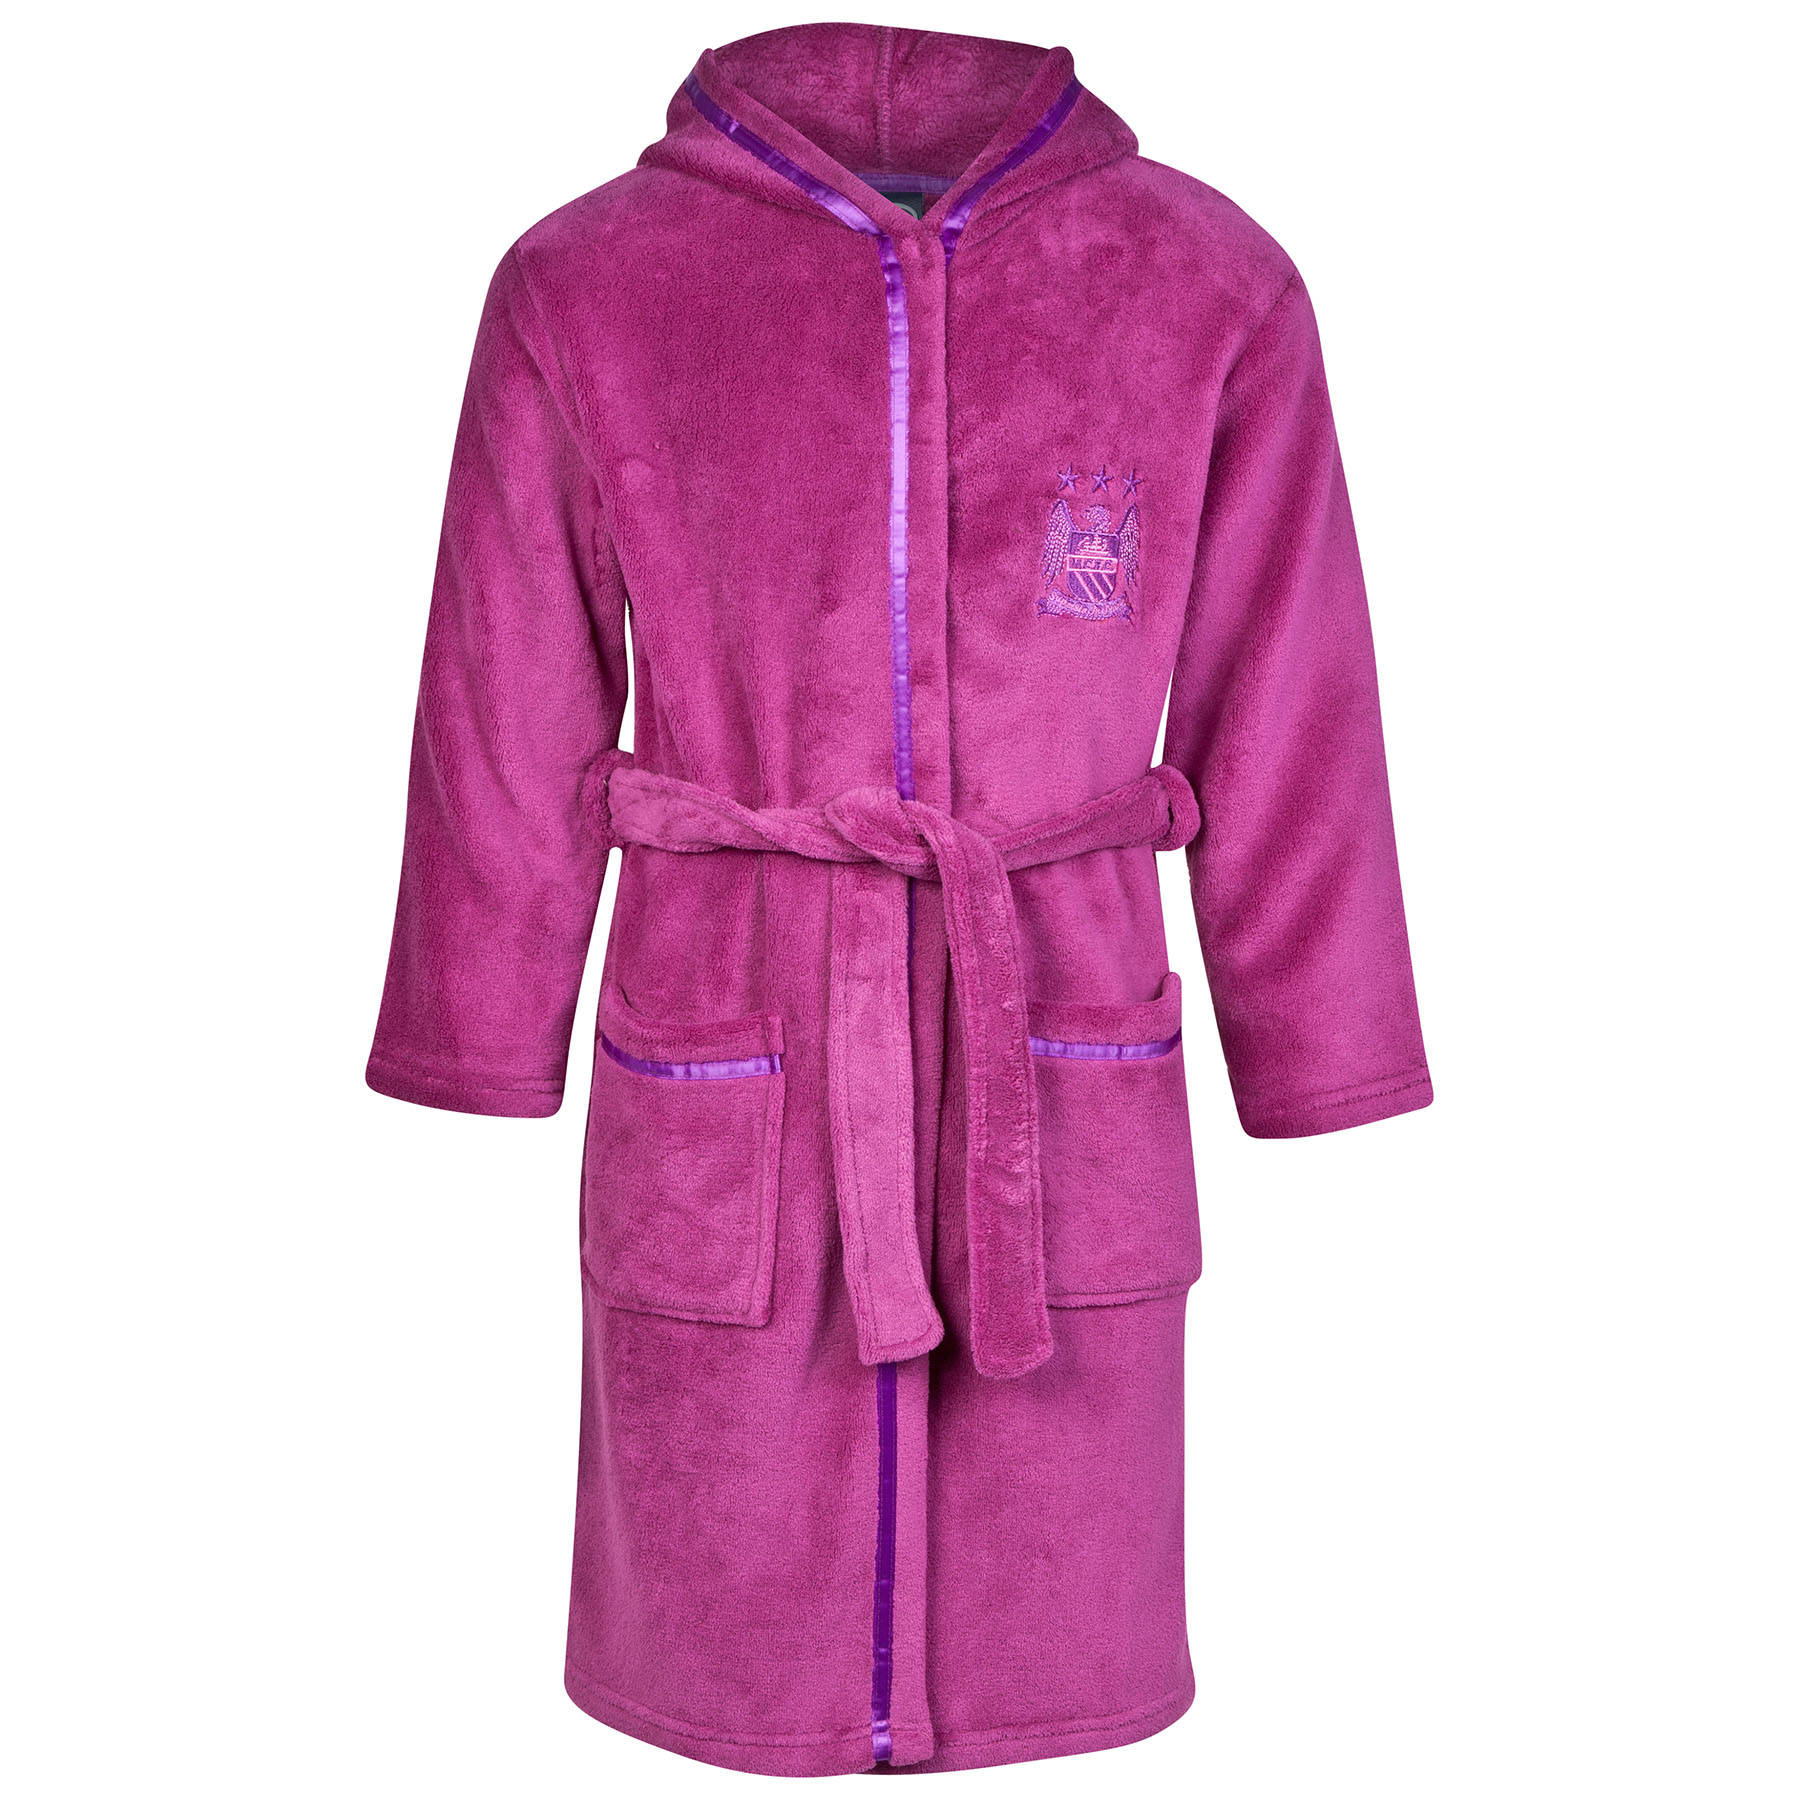 Manchester City Robe - Magenta Pink - Girls